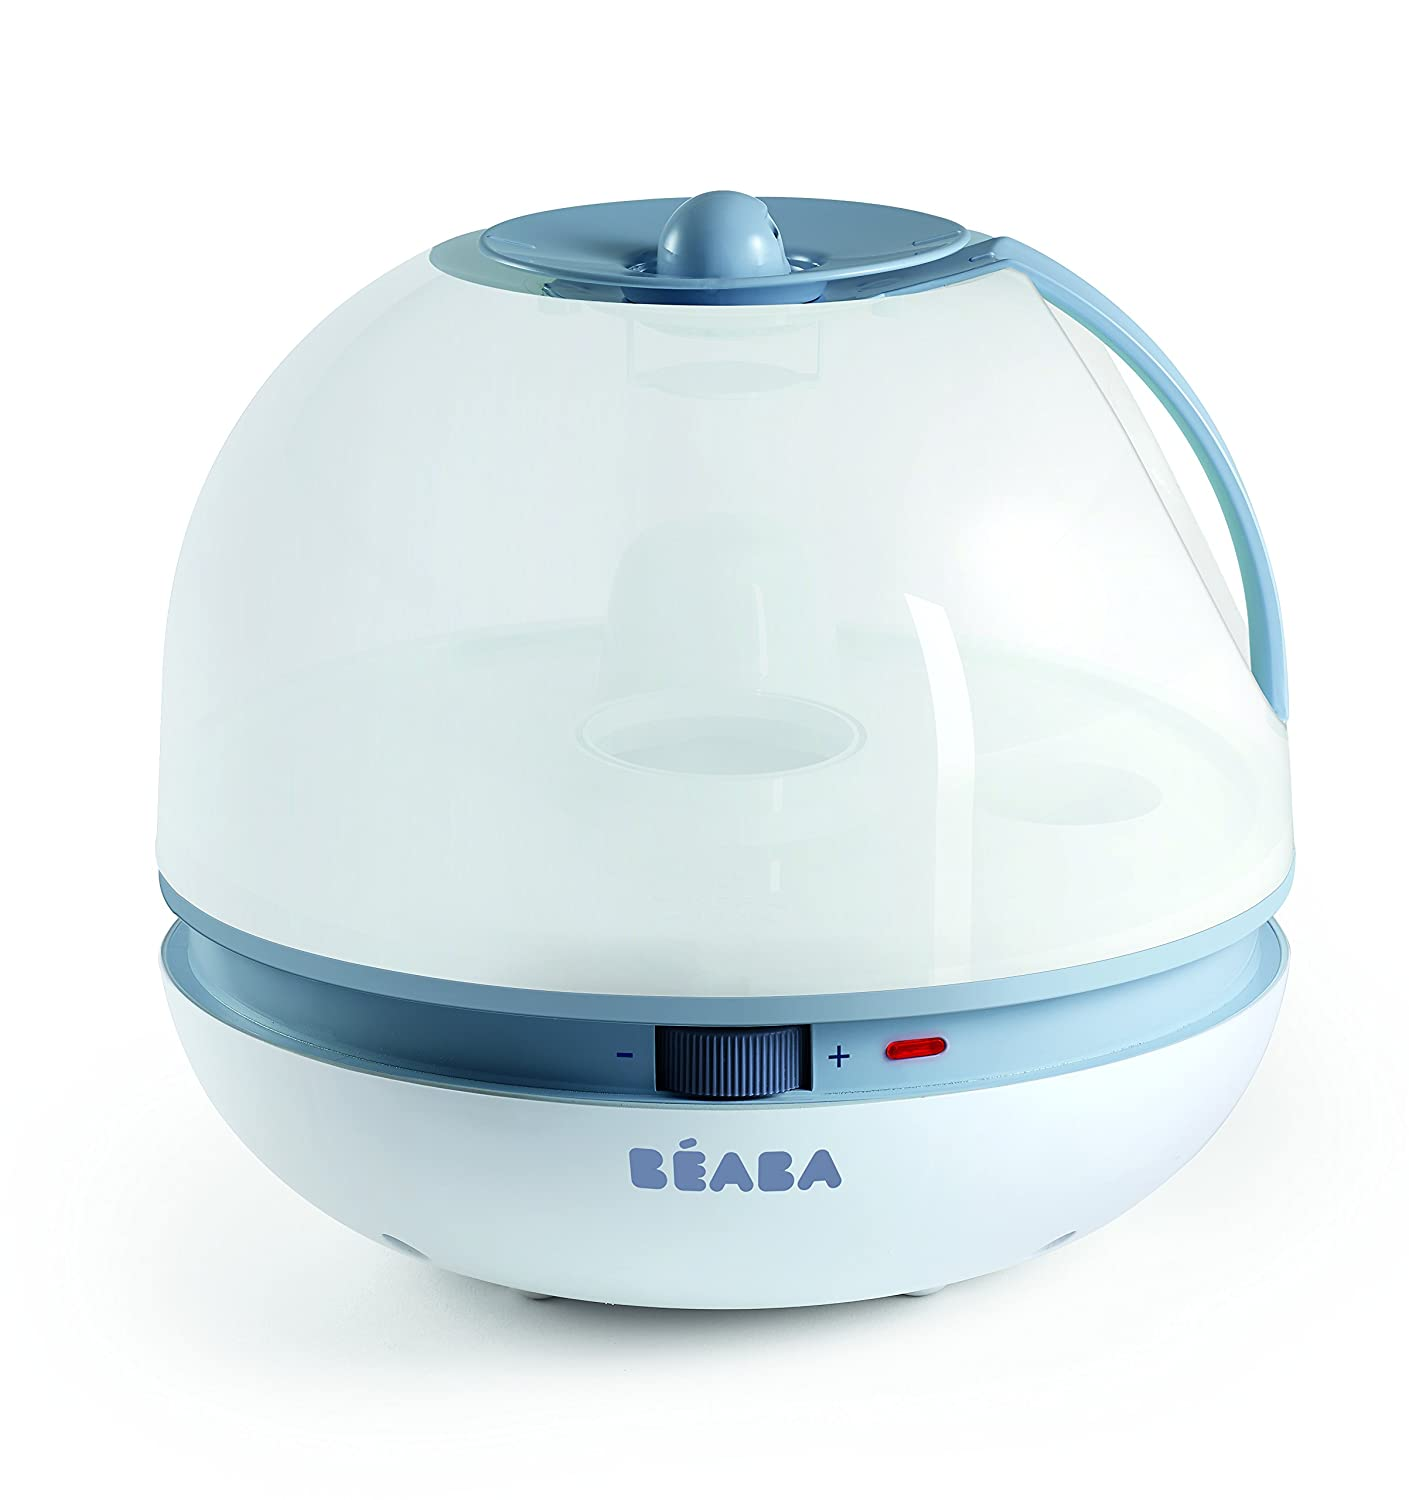 Béaba Humidifier Silenso with Cold Steam and Adjustable Flow. 920313